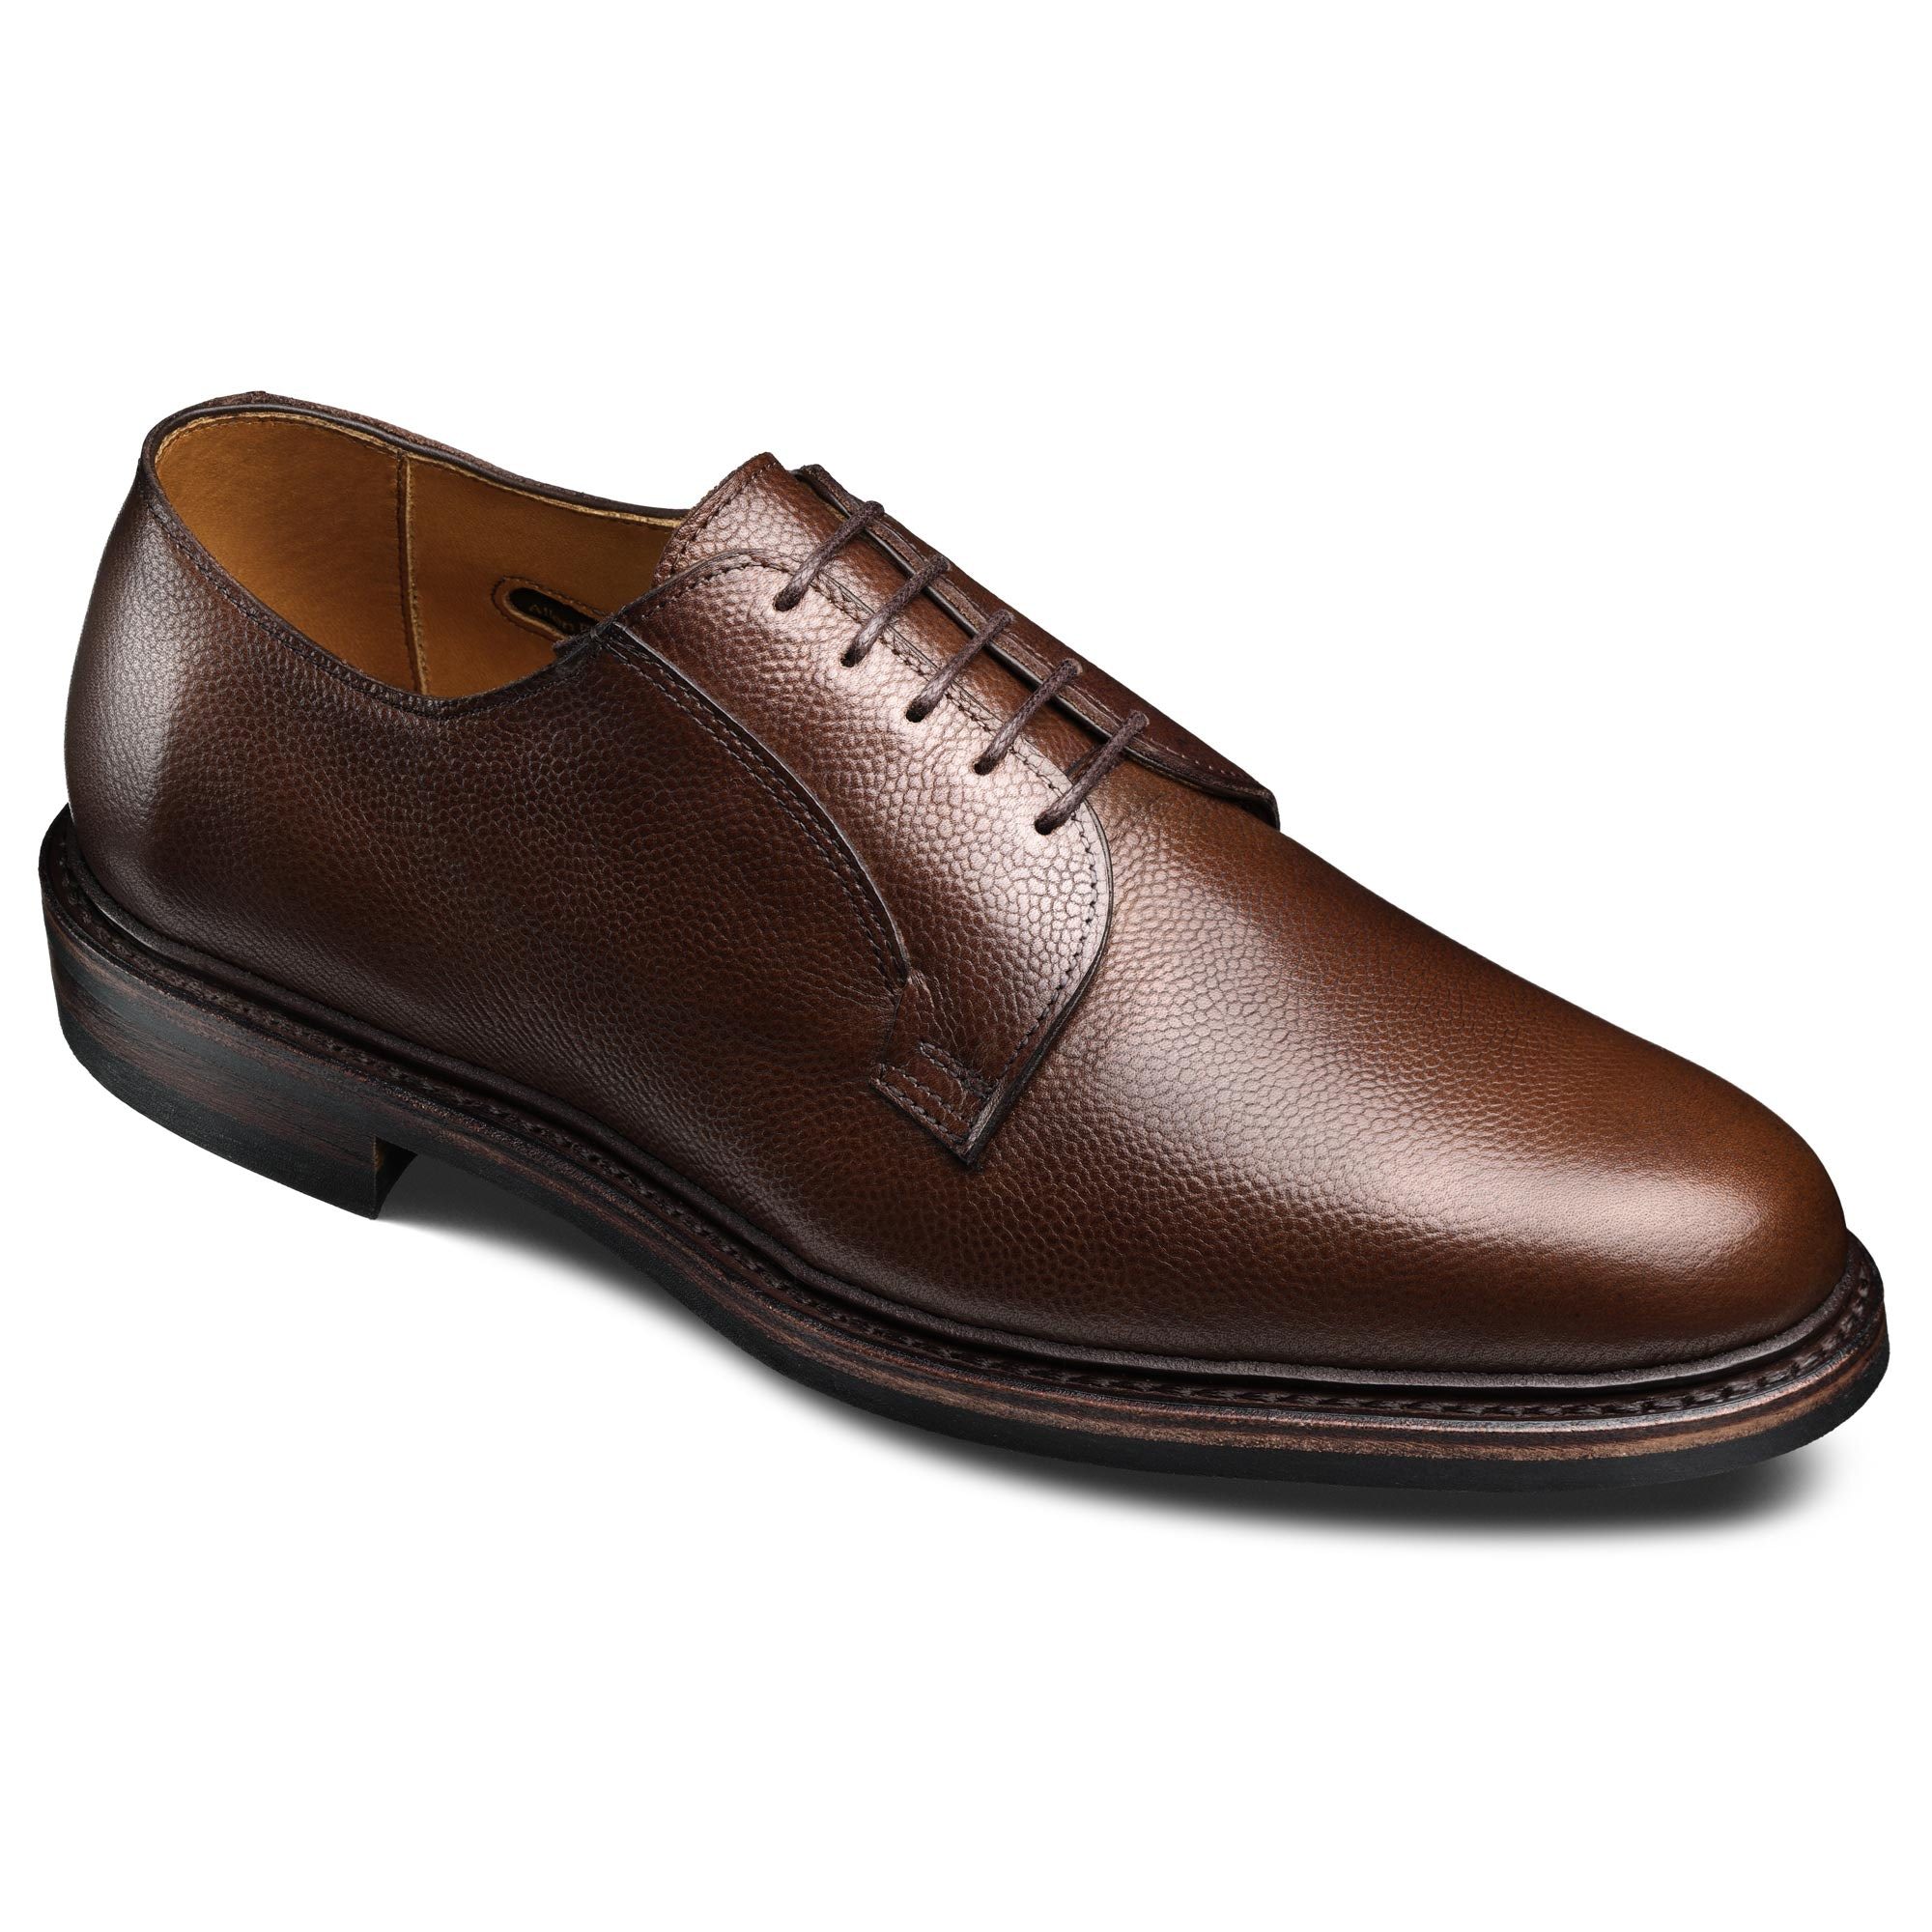 Leeds 2.0 - Plain-toe Lace-up Oxford Mens Dress Shoes by Allen Edmonds